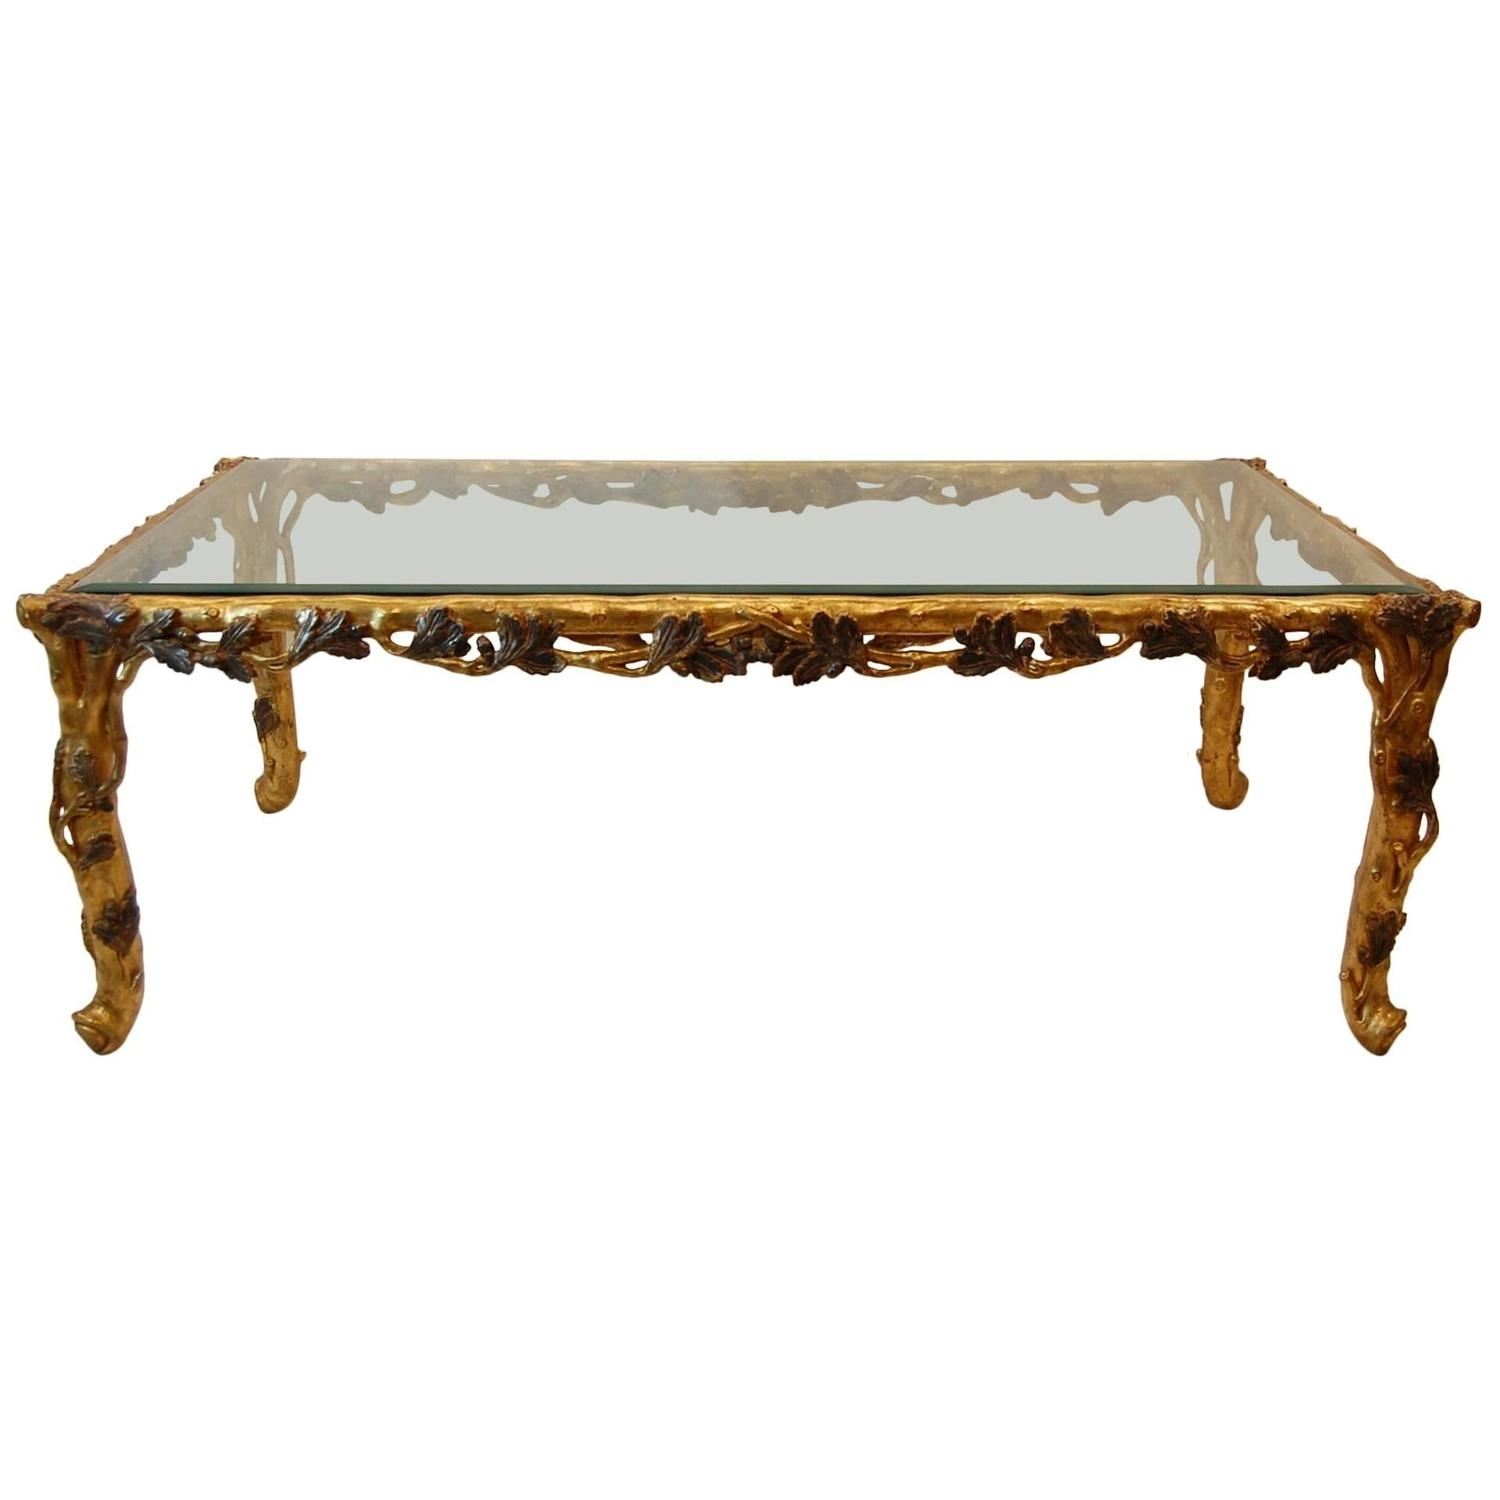 Gold Leaf Coffee Table | Furniture Design intended for Gold Leaf Collection Coffee Tables (Image 12 of 30)